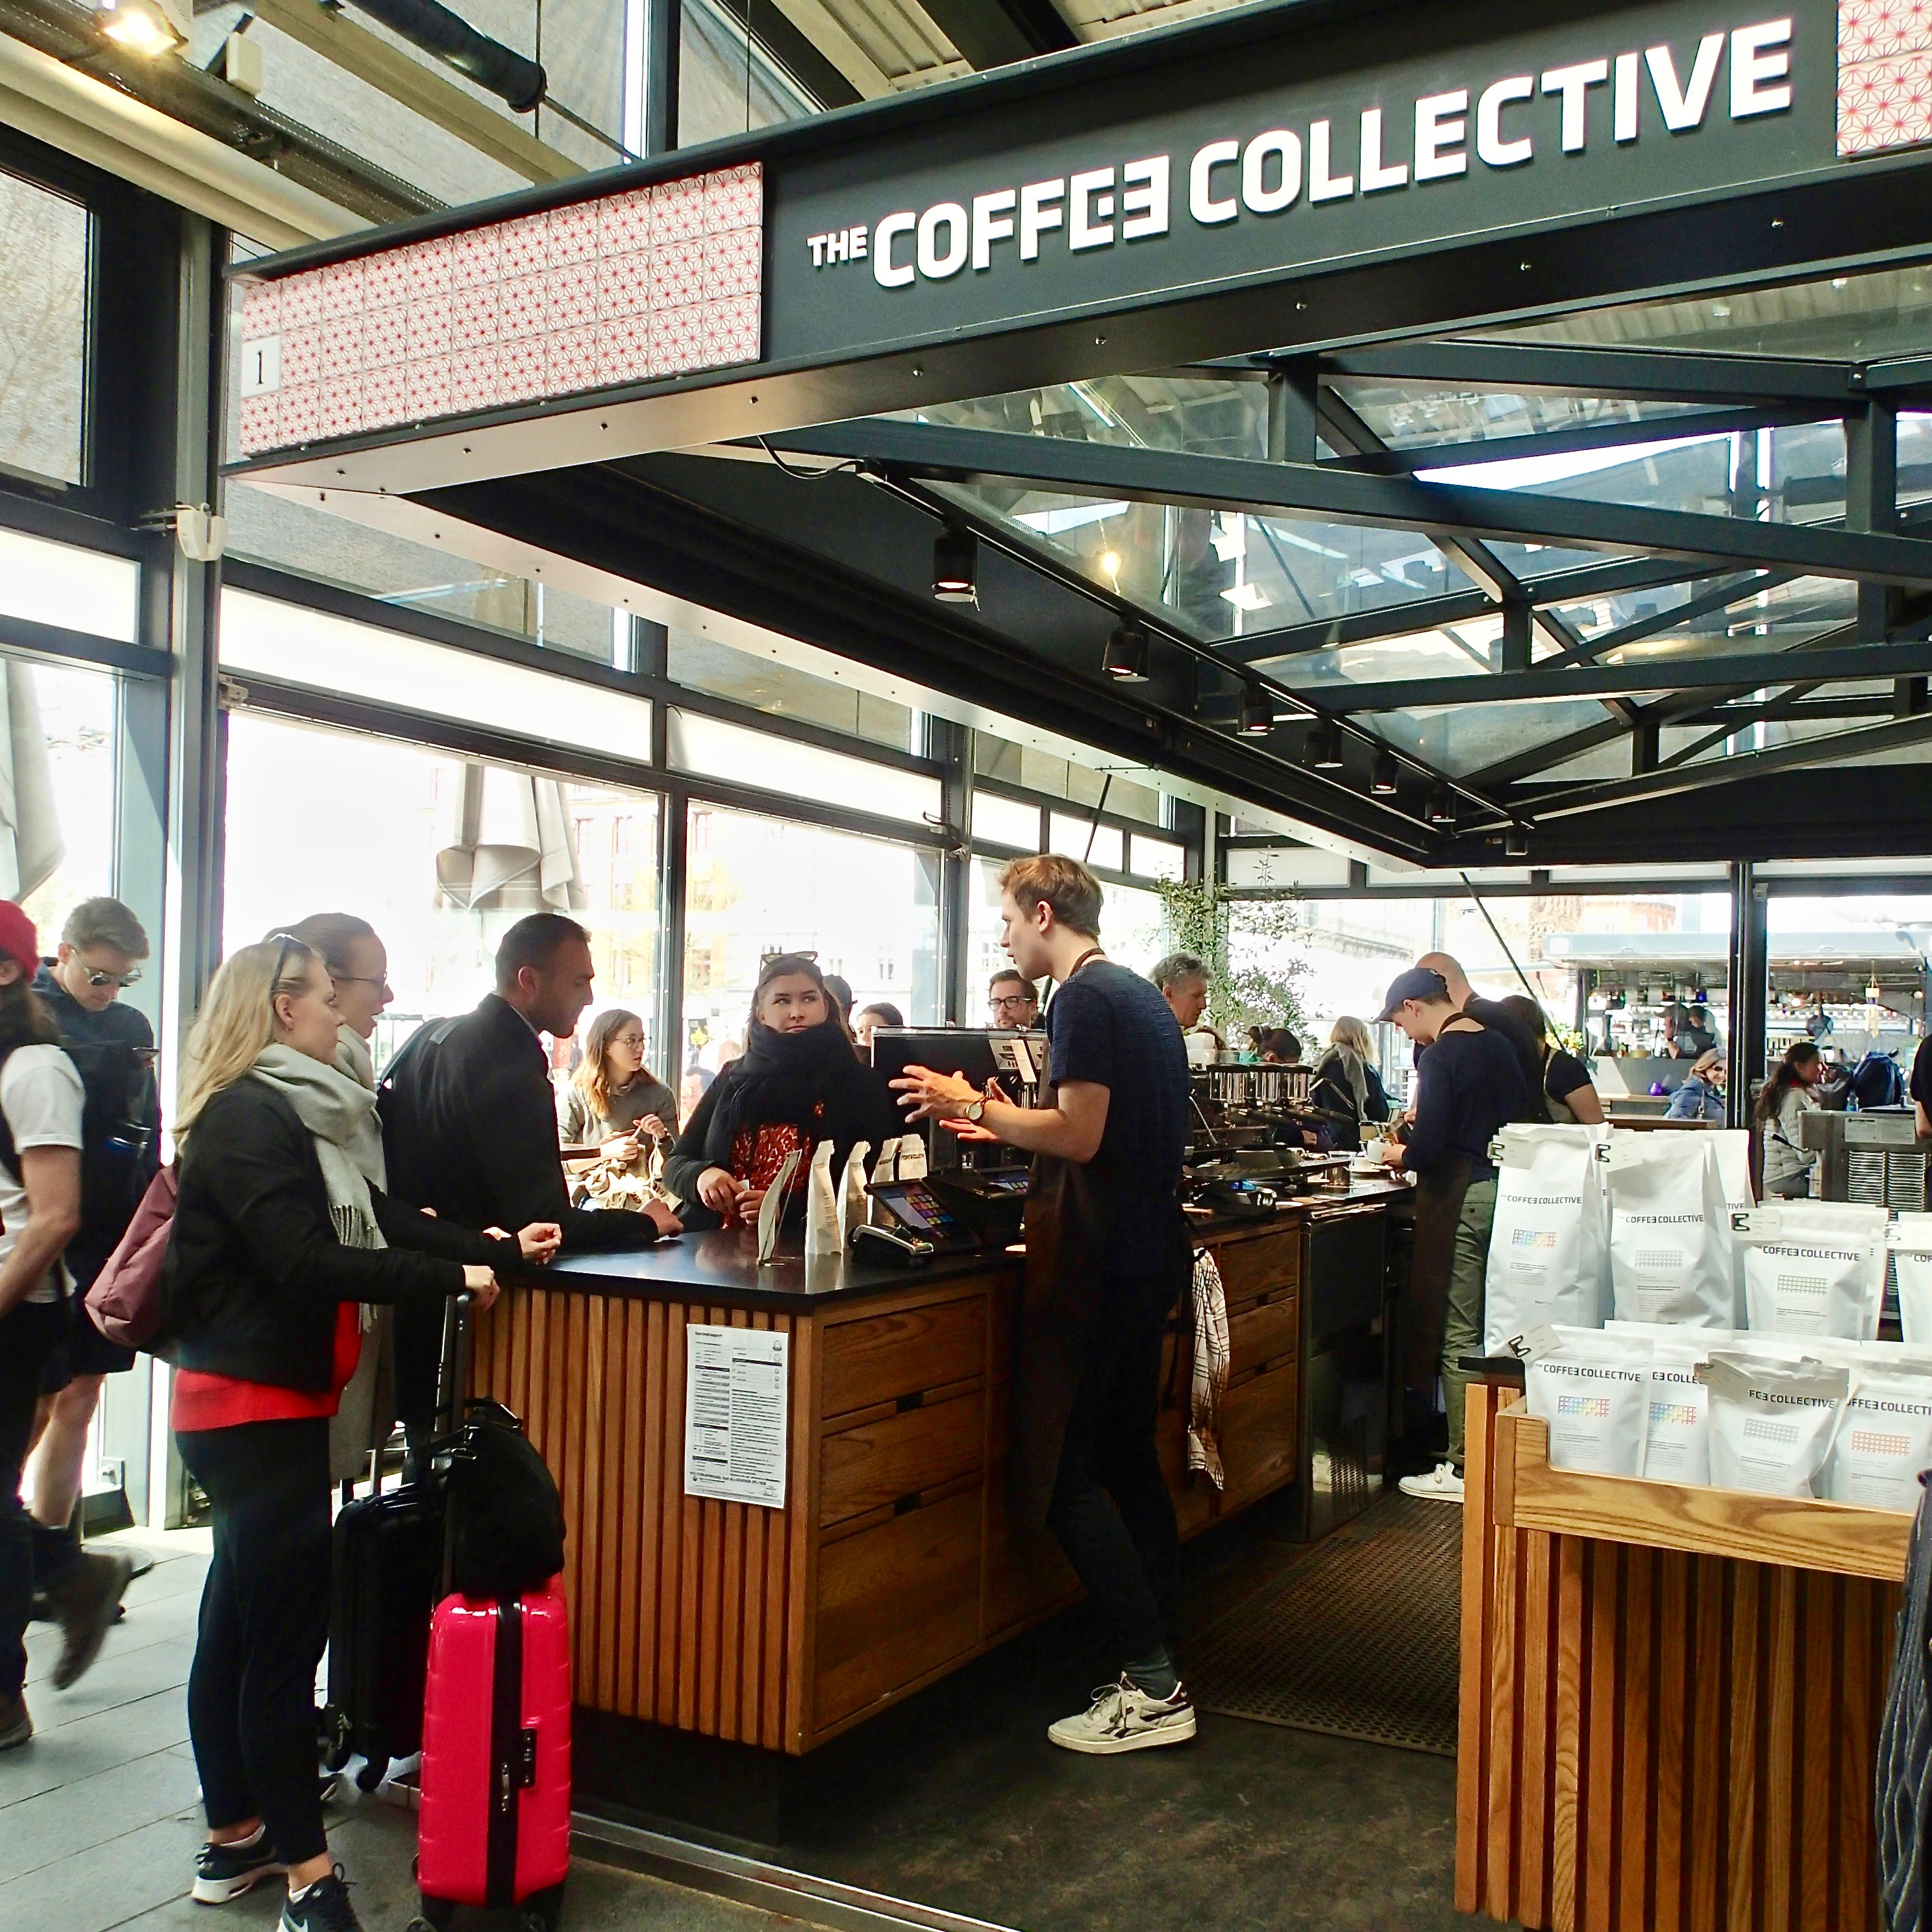 The Coffee Collective outside2